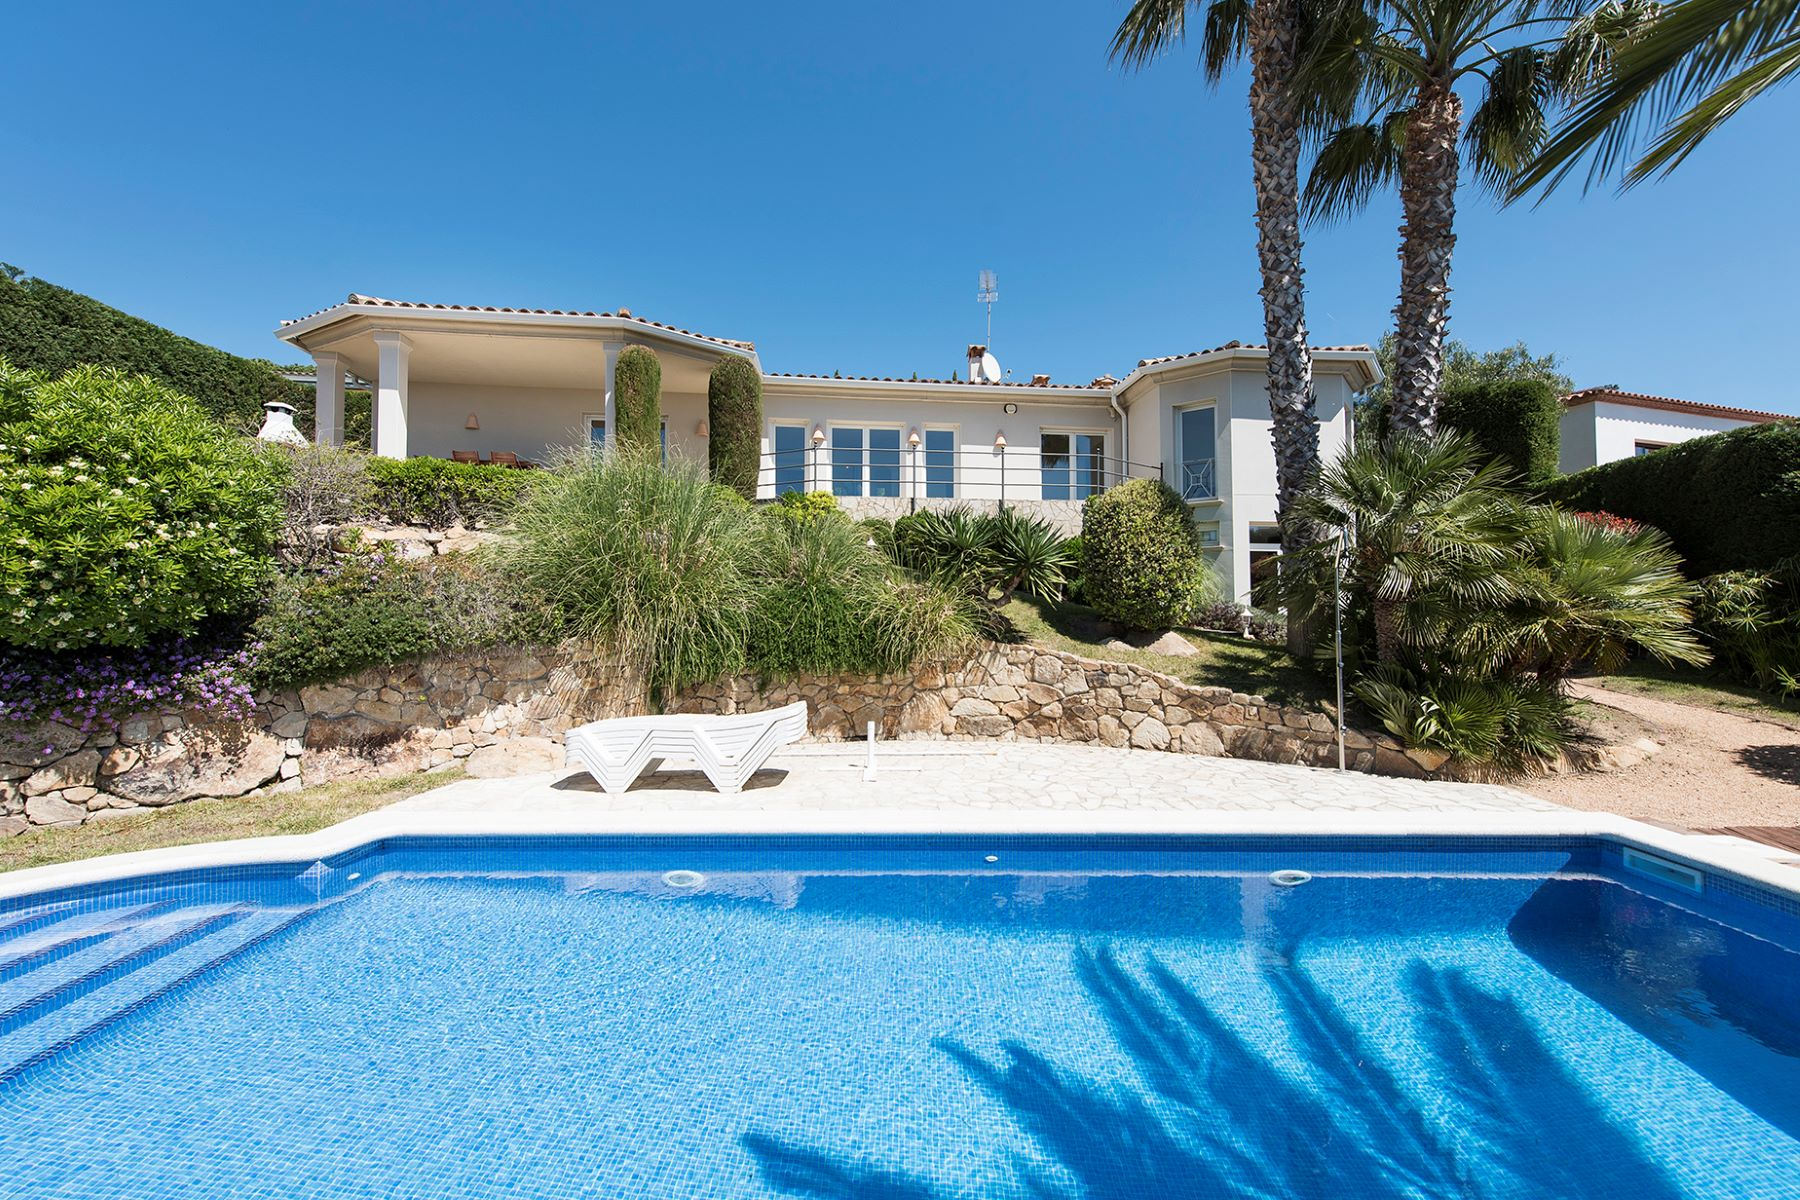 Maison unifamiliale pour l Vente à Bright villa with seaviews Playa De Aro, Costa Brava, 17250 Espagne